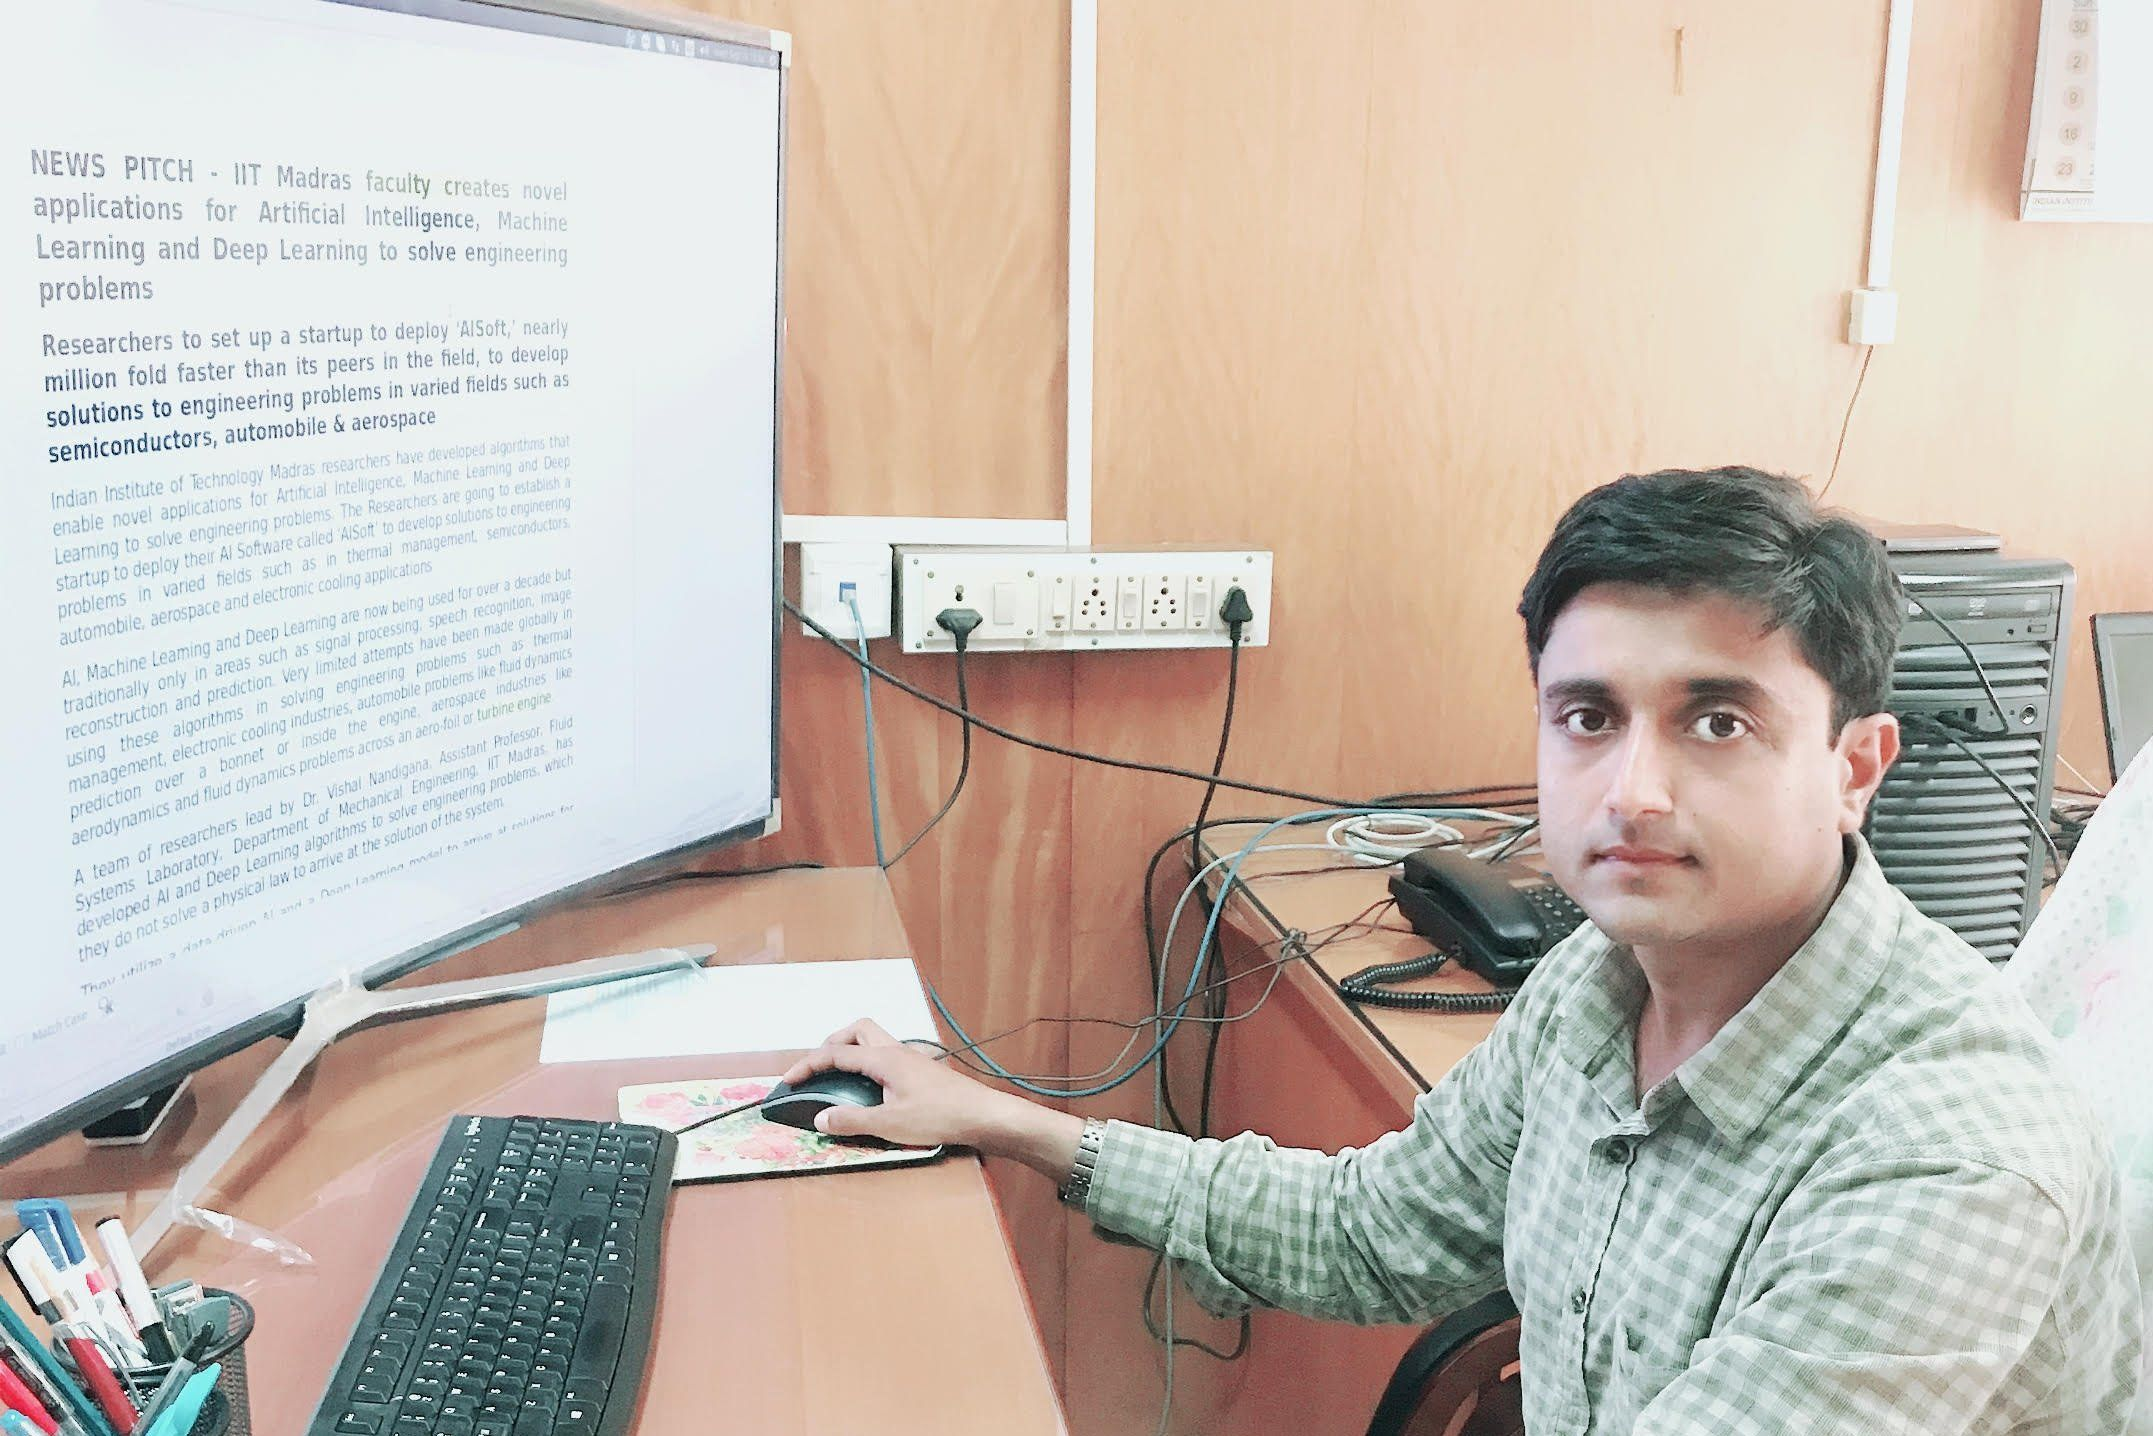 Novel applications to Solve Engineering problems